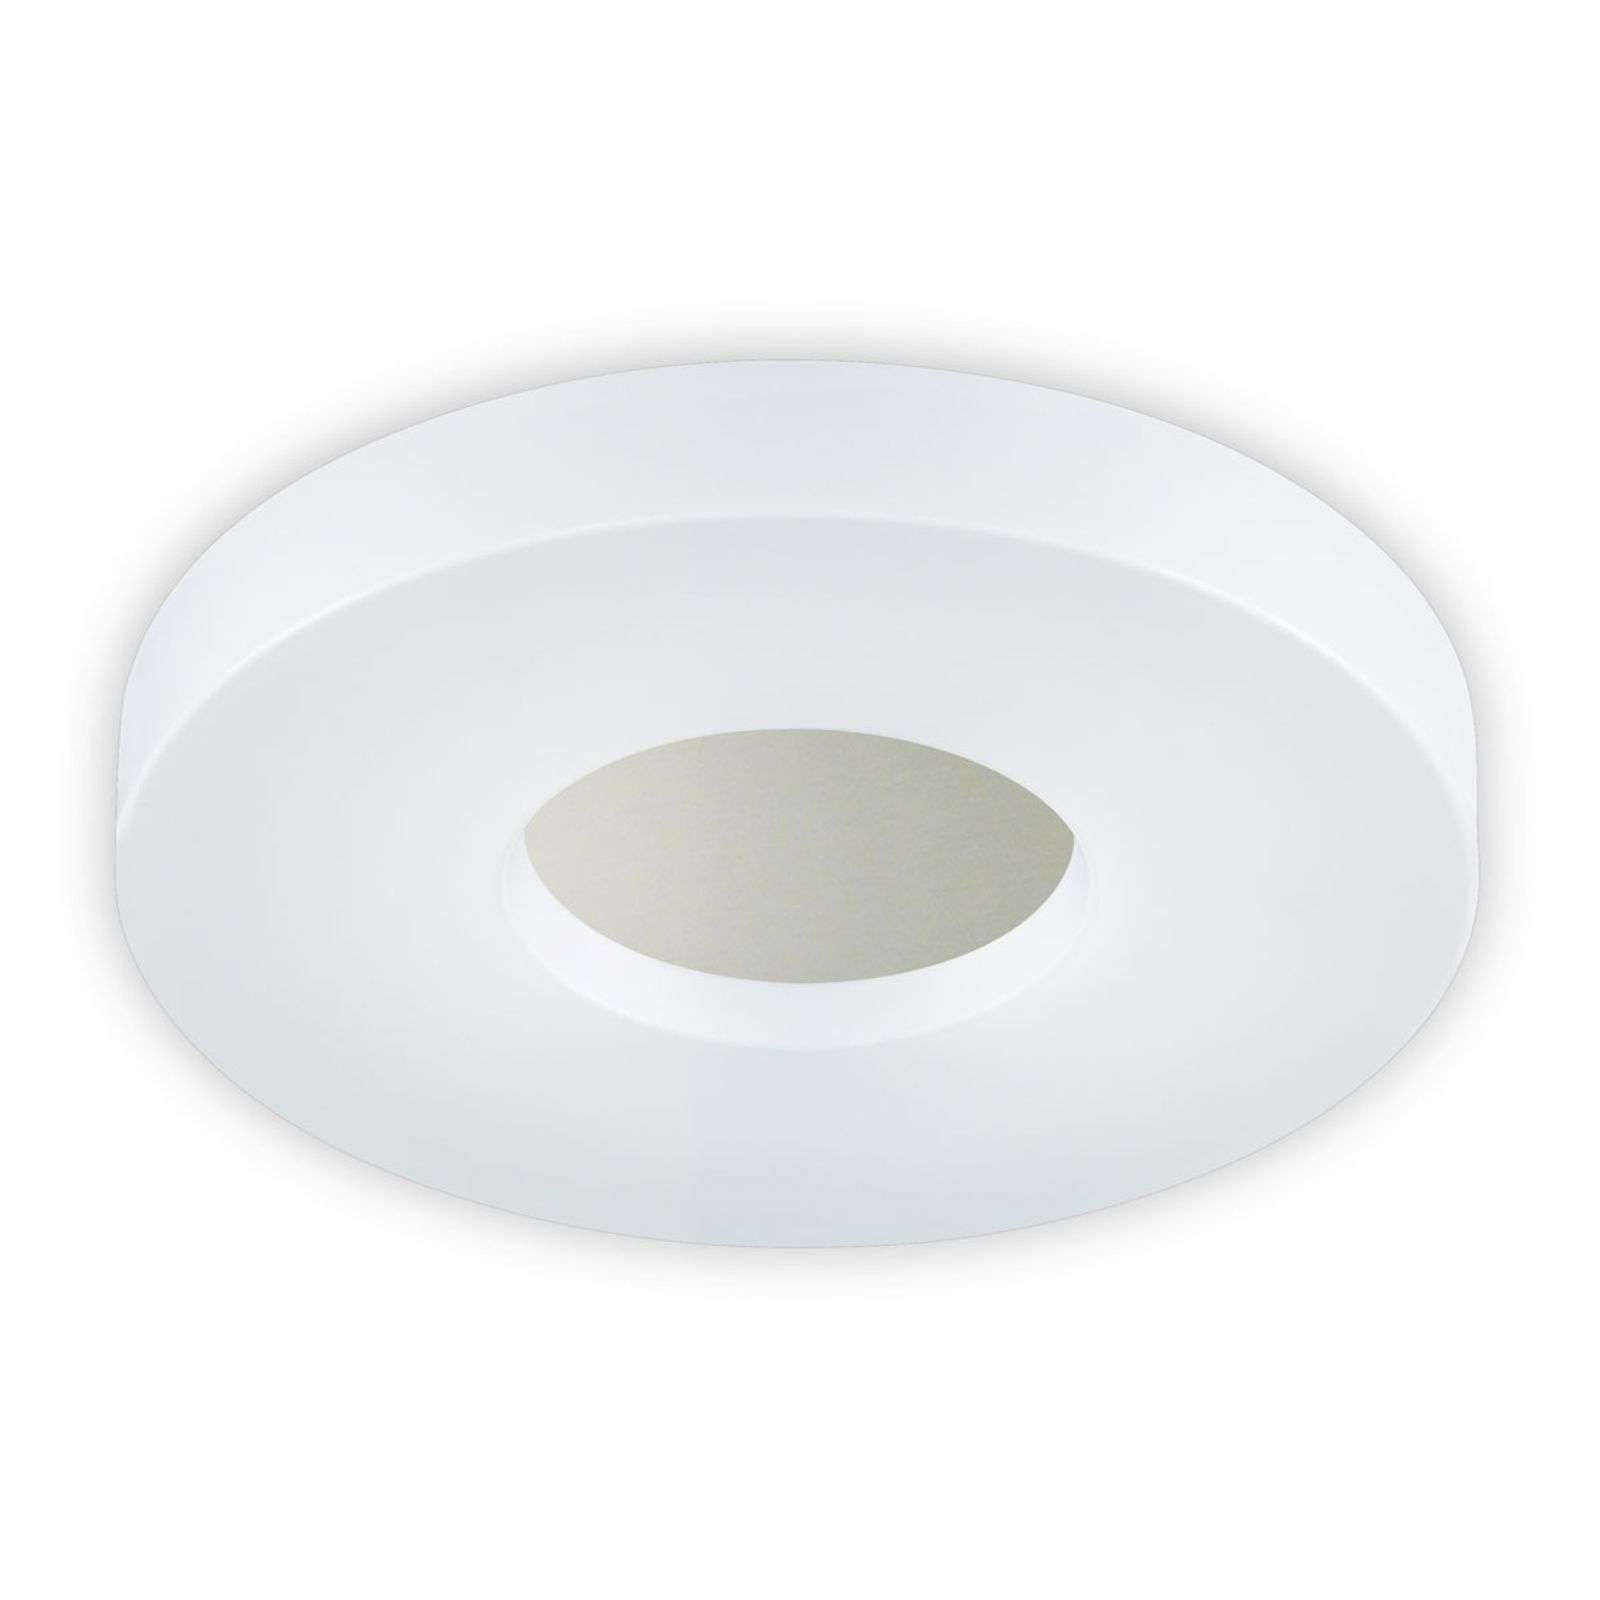 LED plafondlamp Cookie in een ronde vorm